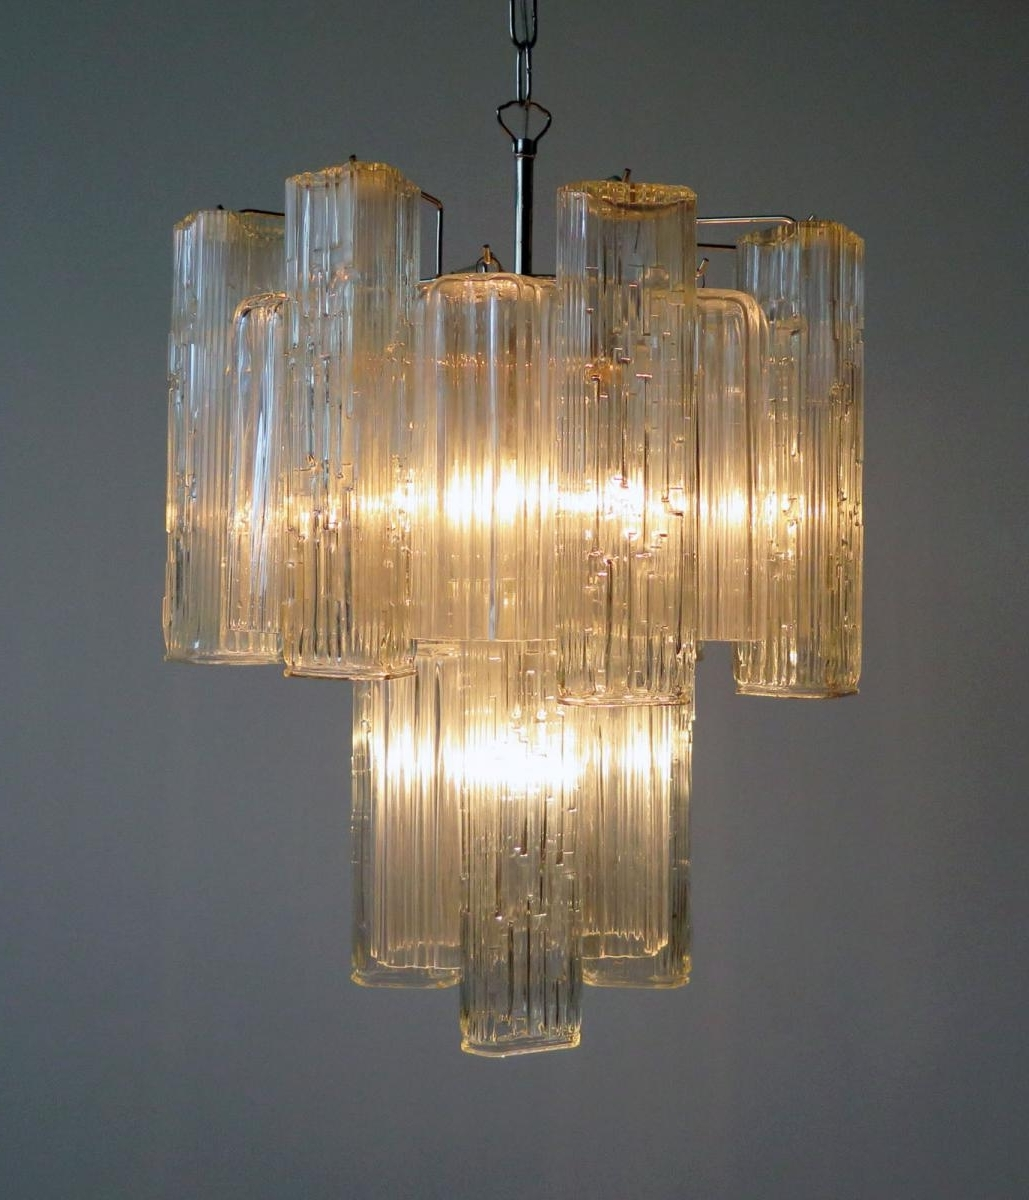 Best And Newest Glass Chandelier Within Vintage Murano Glass Chandelier From Murano For Sale At Pamono (View 12 of 15)